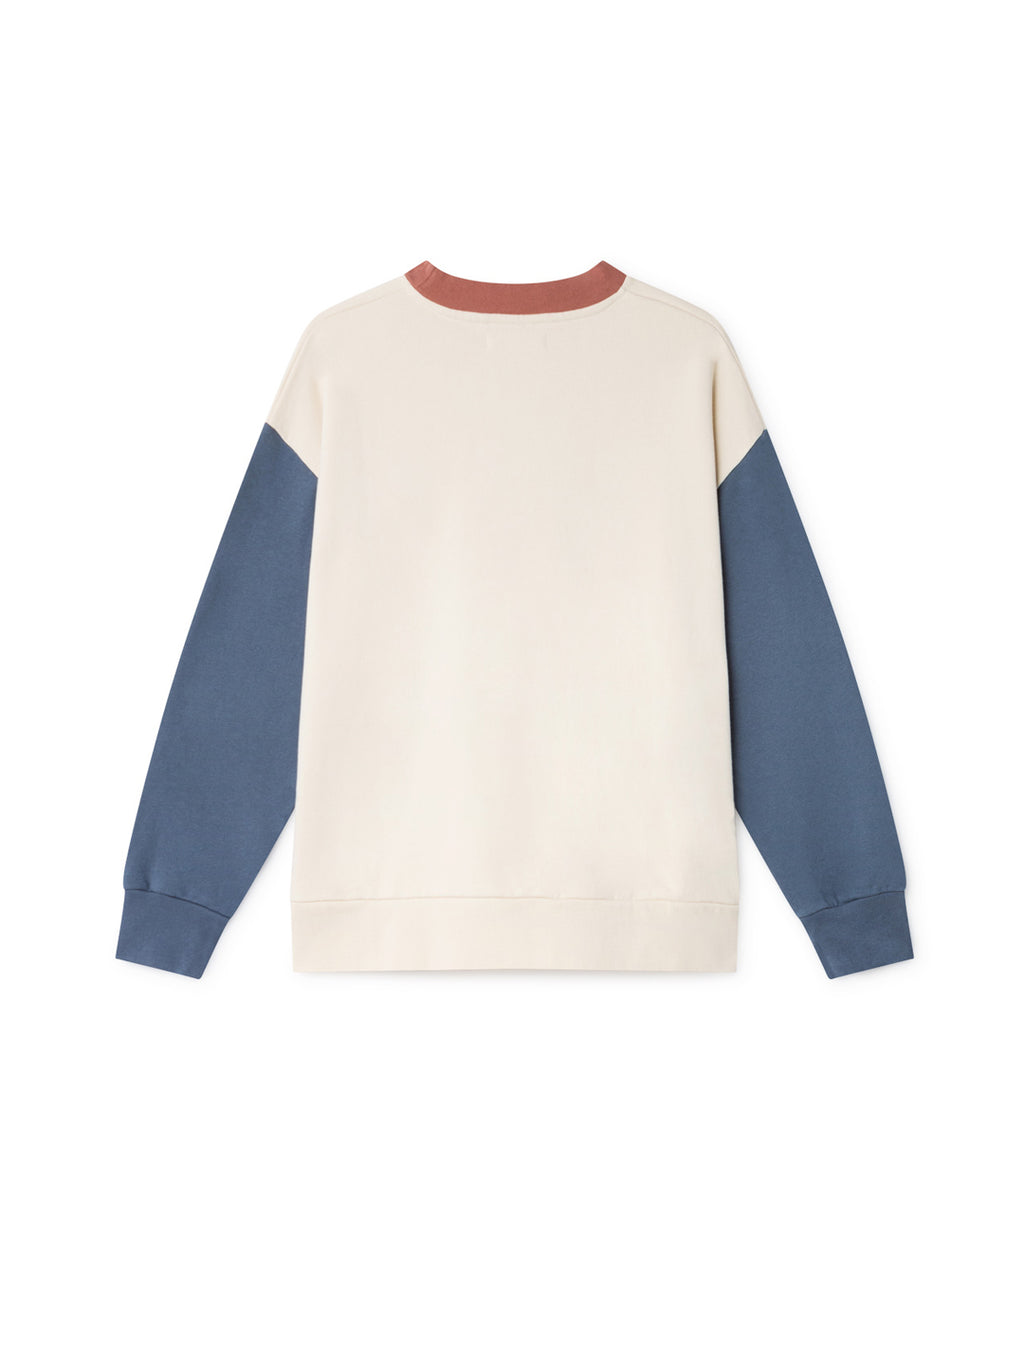 TWOTHIRDS Womens Sweat: Korsean - Dusty Blue back